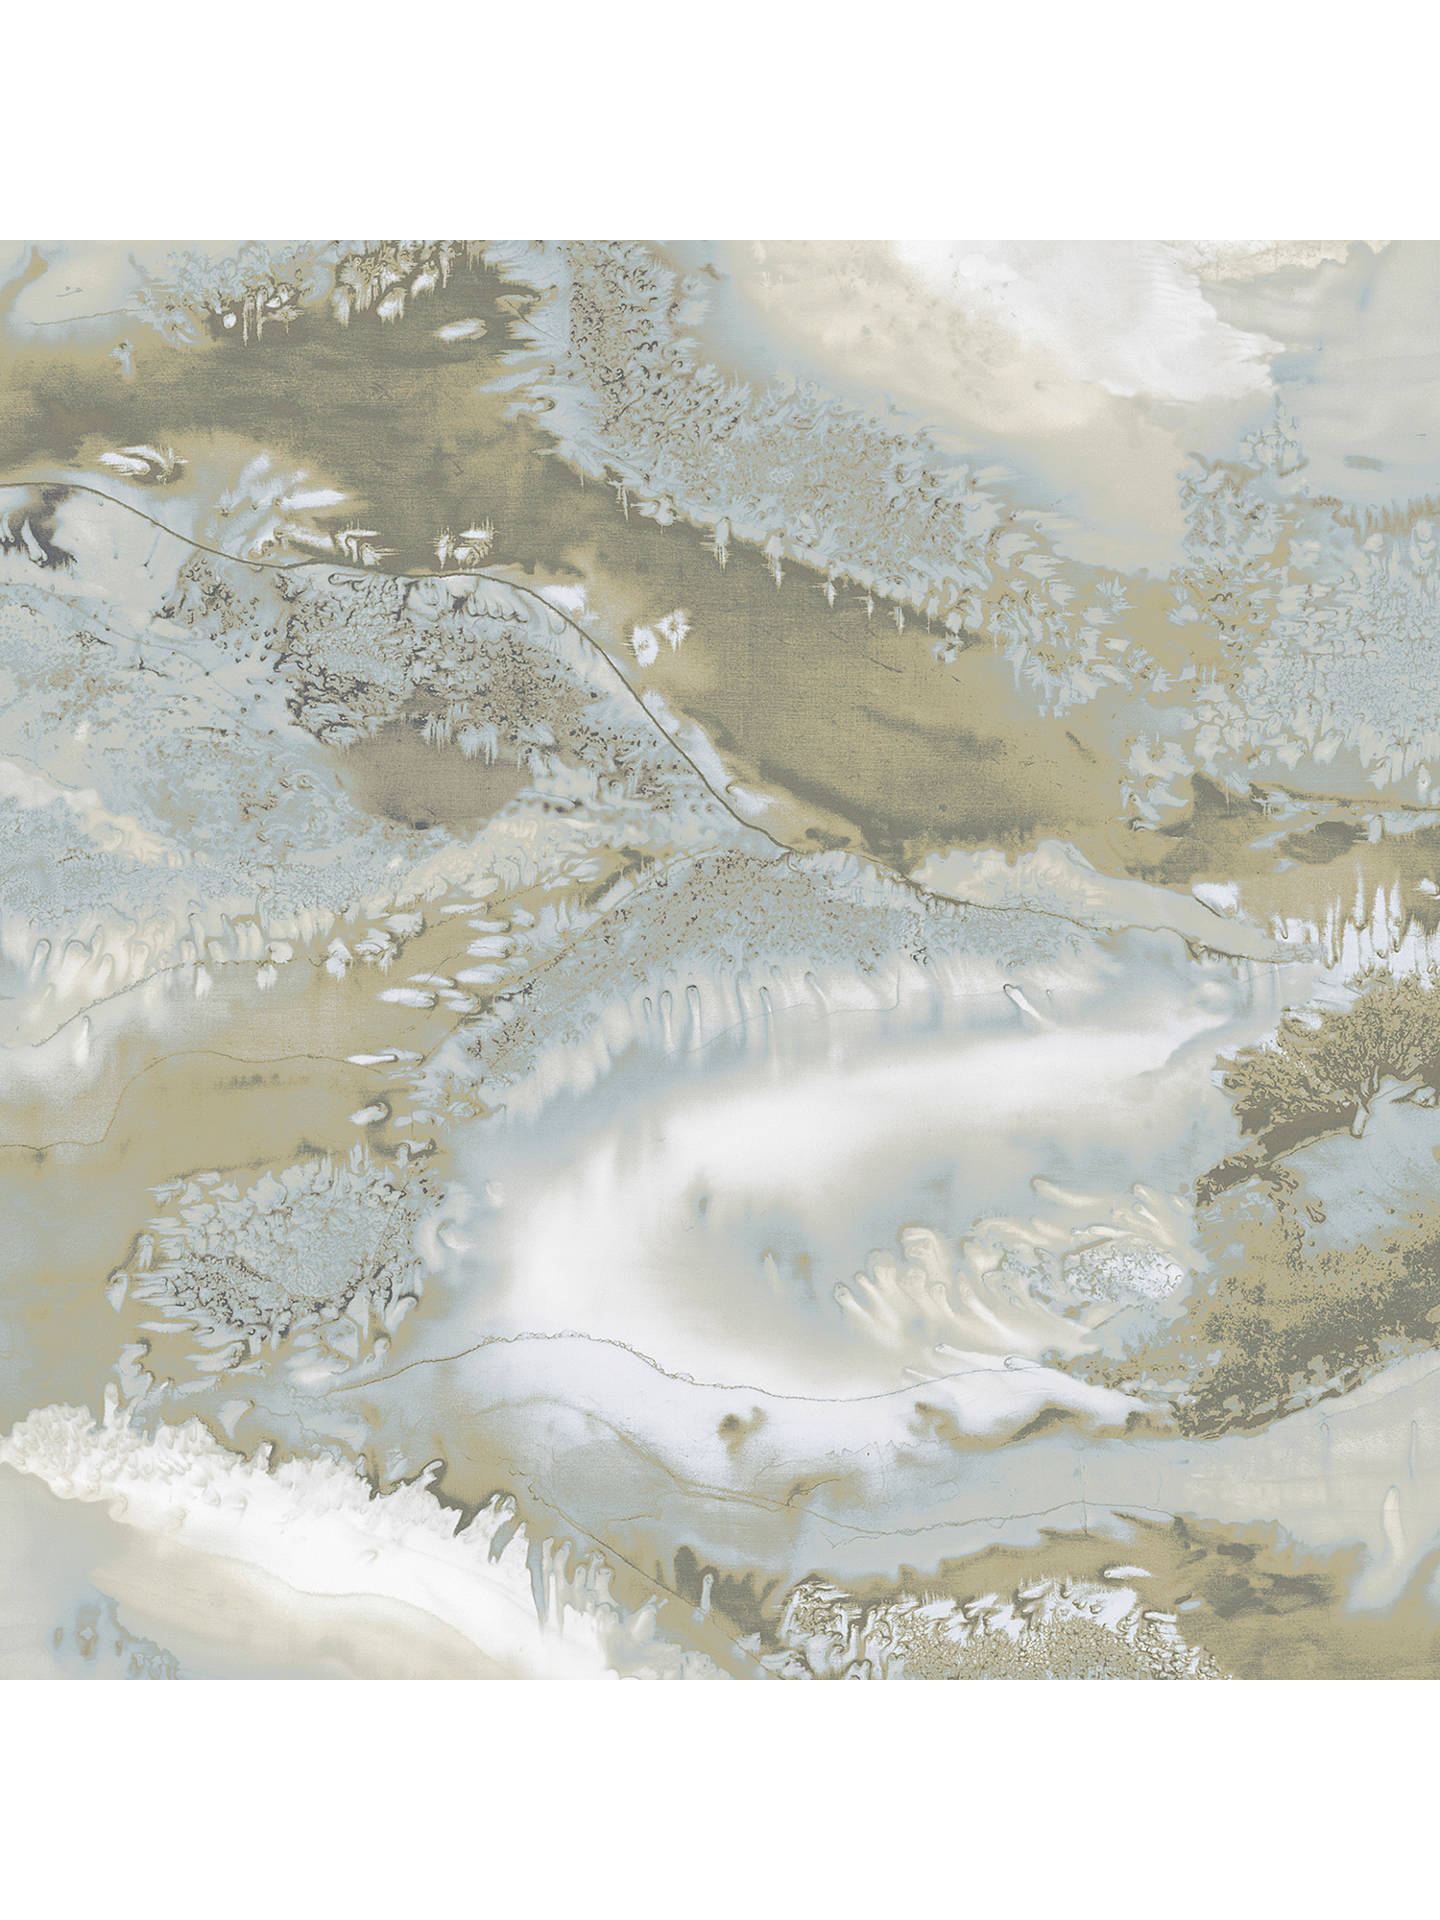 Buy Anthology Obsidian Wallpaper Panel, Jasper, 111630 Panel B Online at johnlewis.com